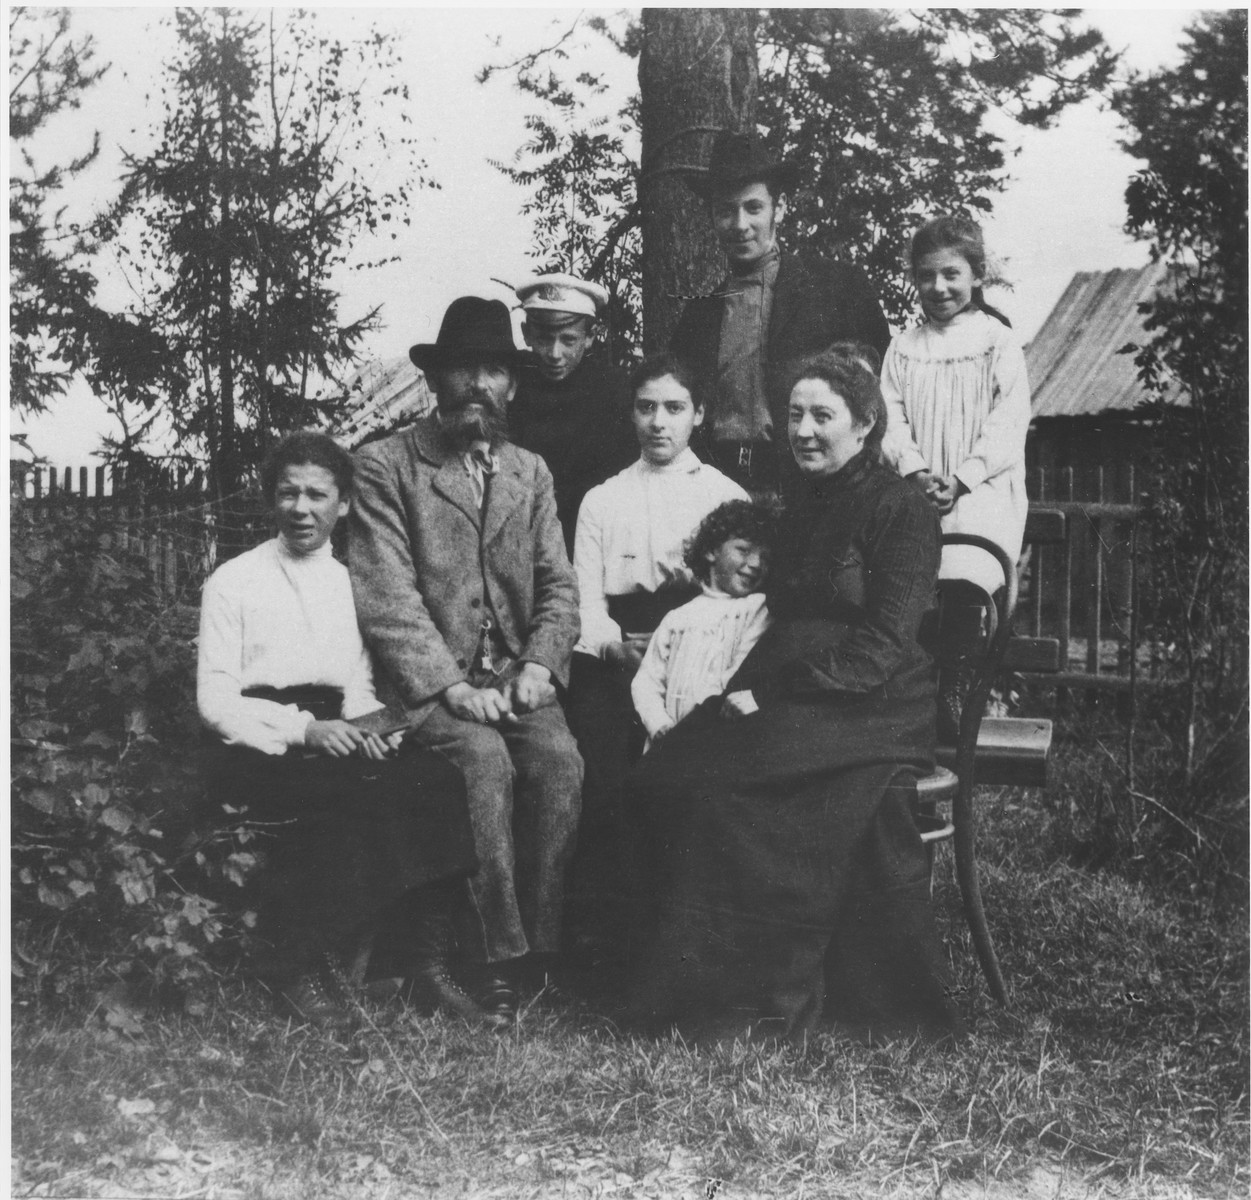 Portrait of the Mikolaevsky family at their dacha in the village of Strelna, a suburb of St. Petersburg.